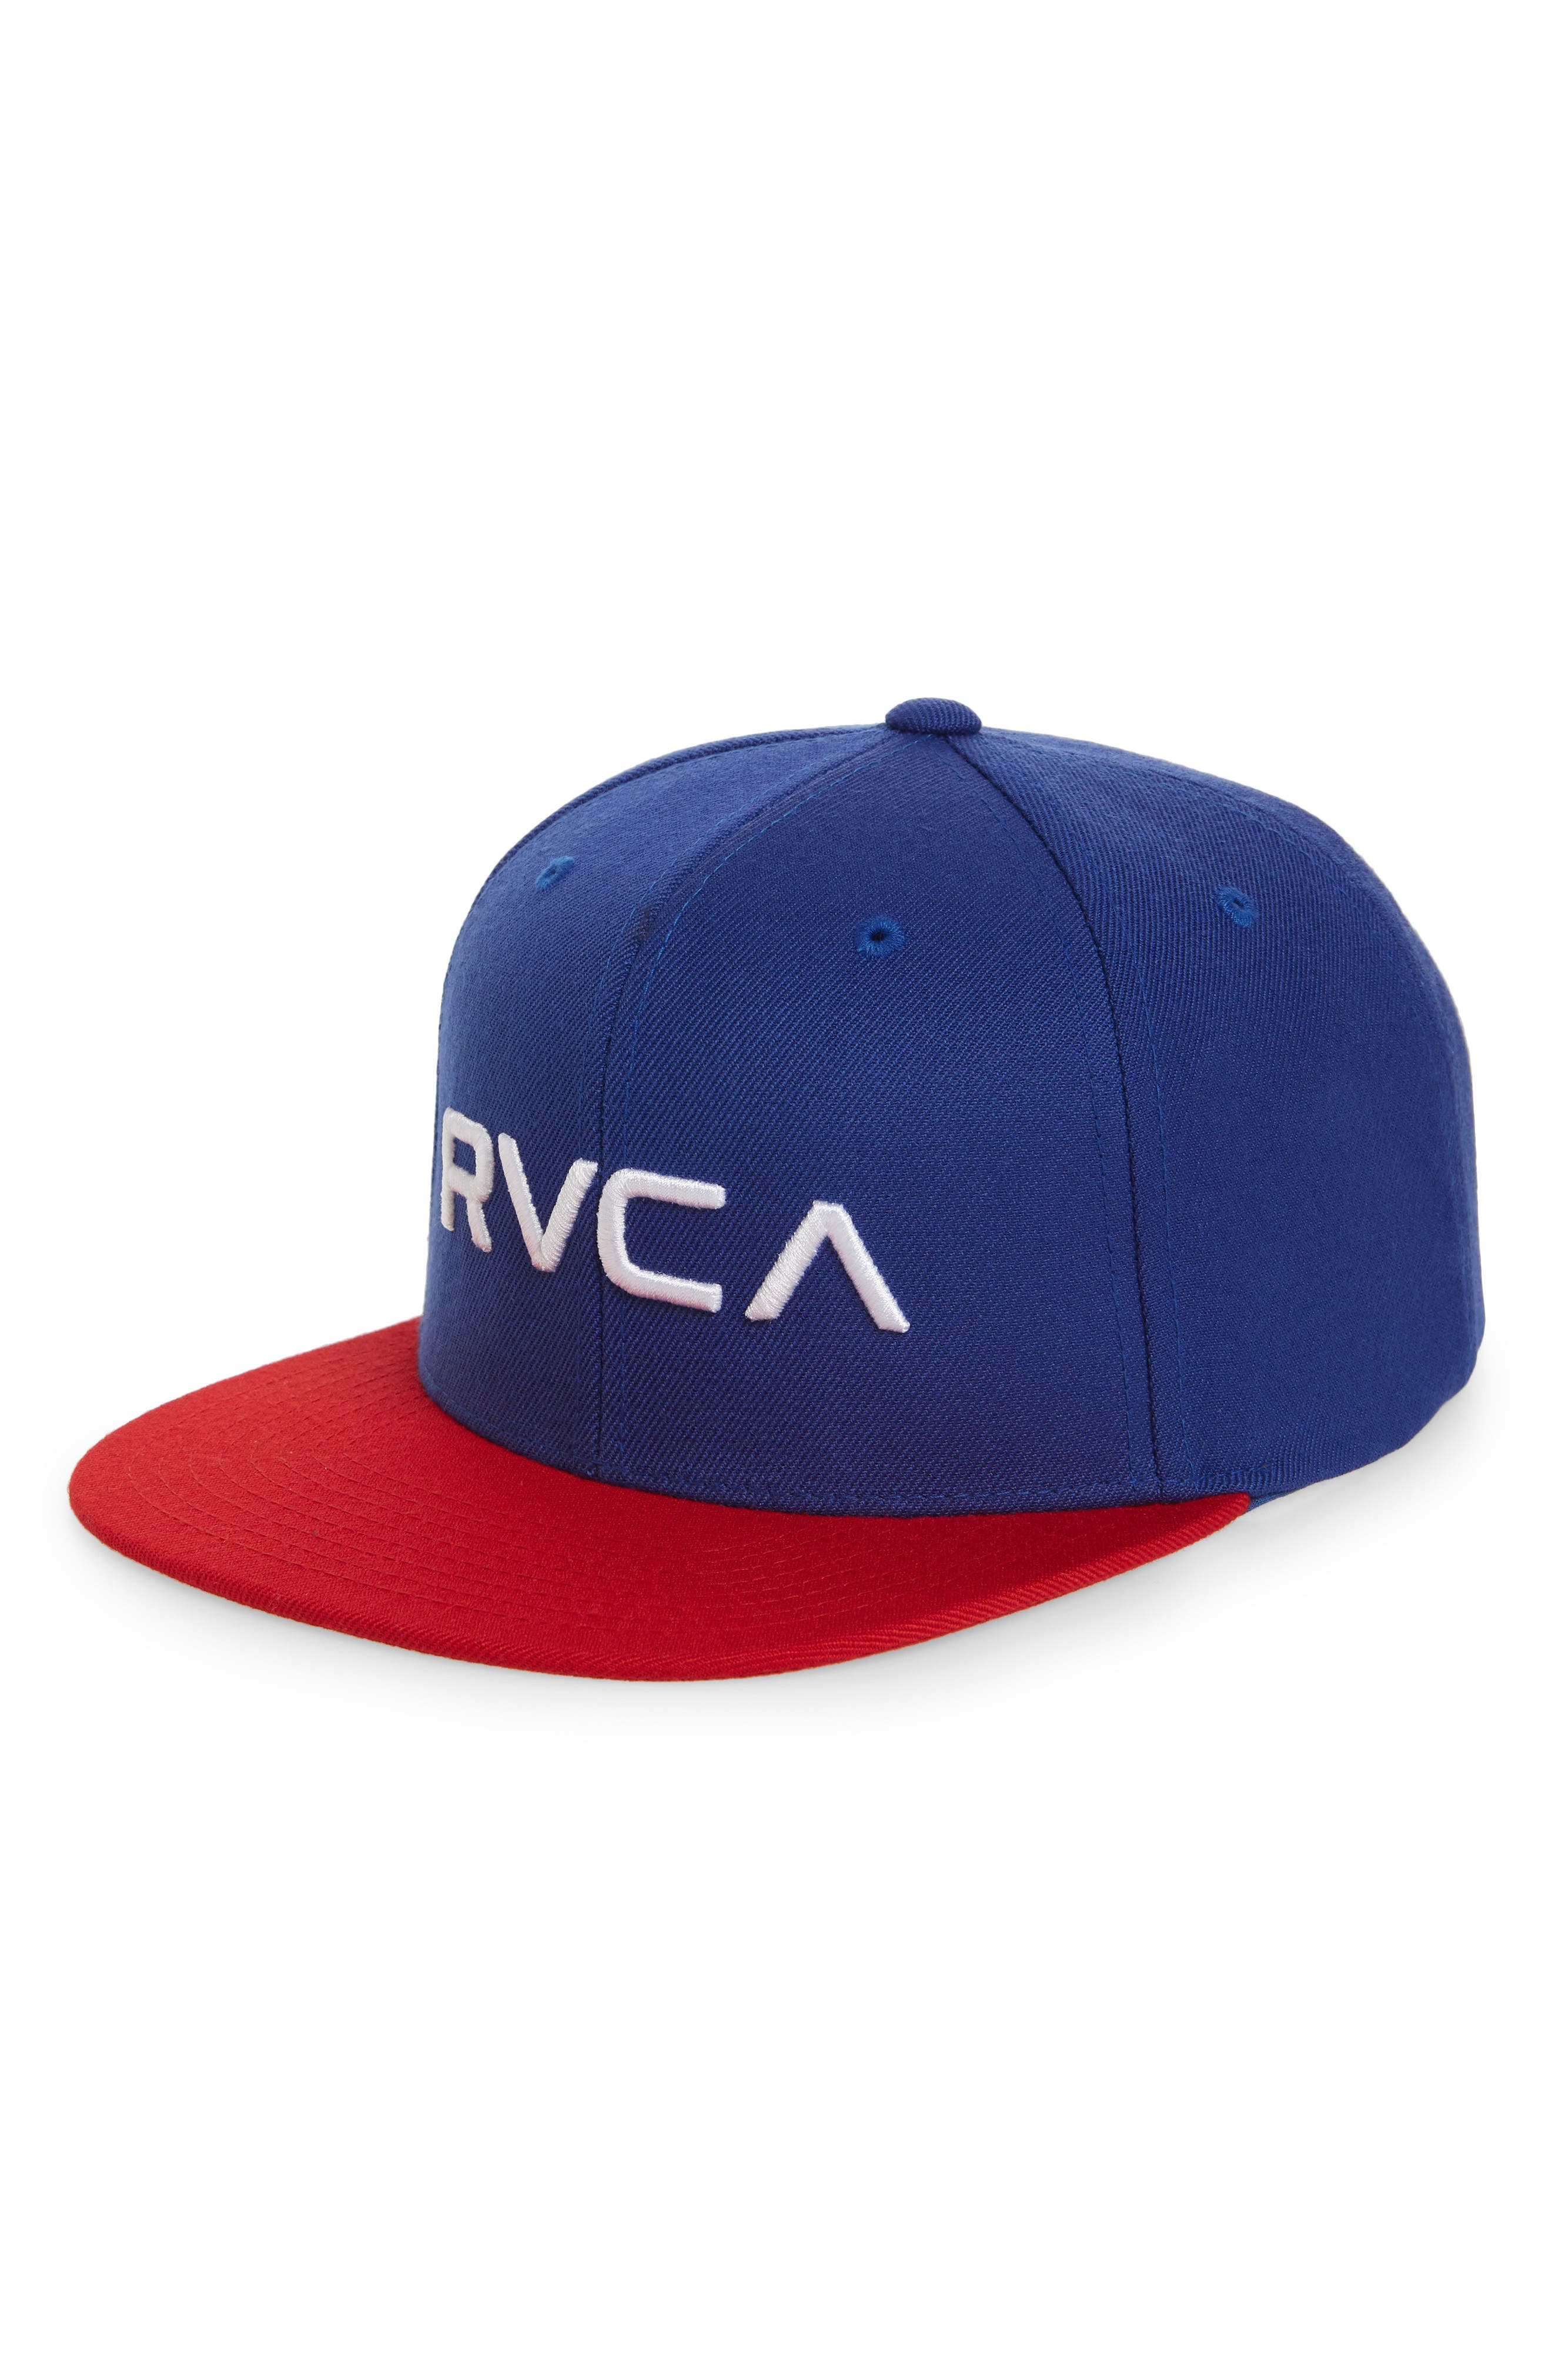 Twill Snapback Baseball Cap,                         Main,                         color, Blue/ Red